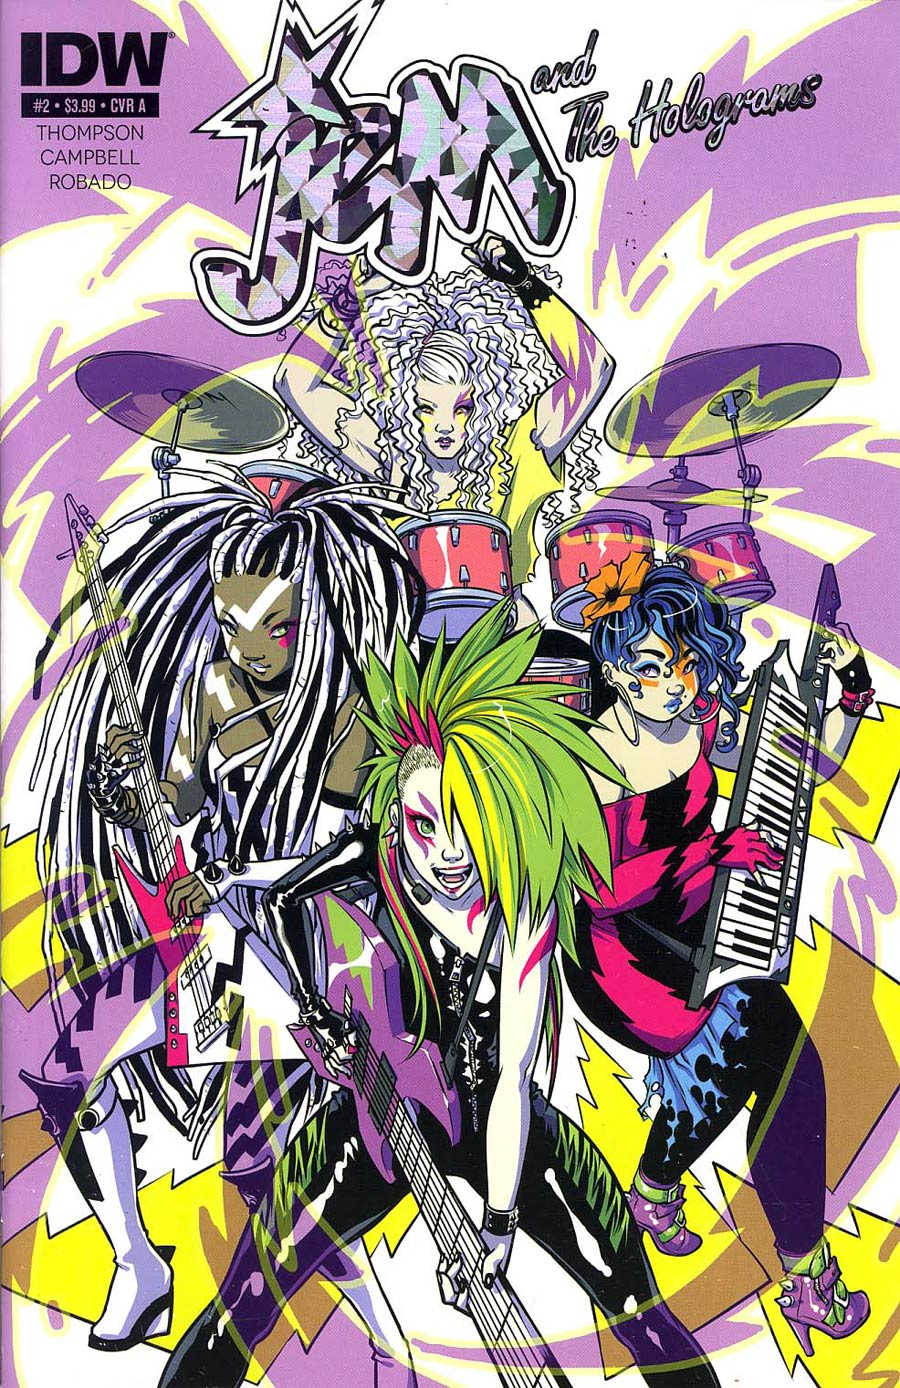 Jem And The Holograms #2 Cover A Regular Ross Campbell Band Cover